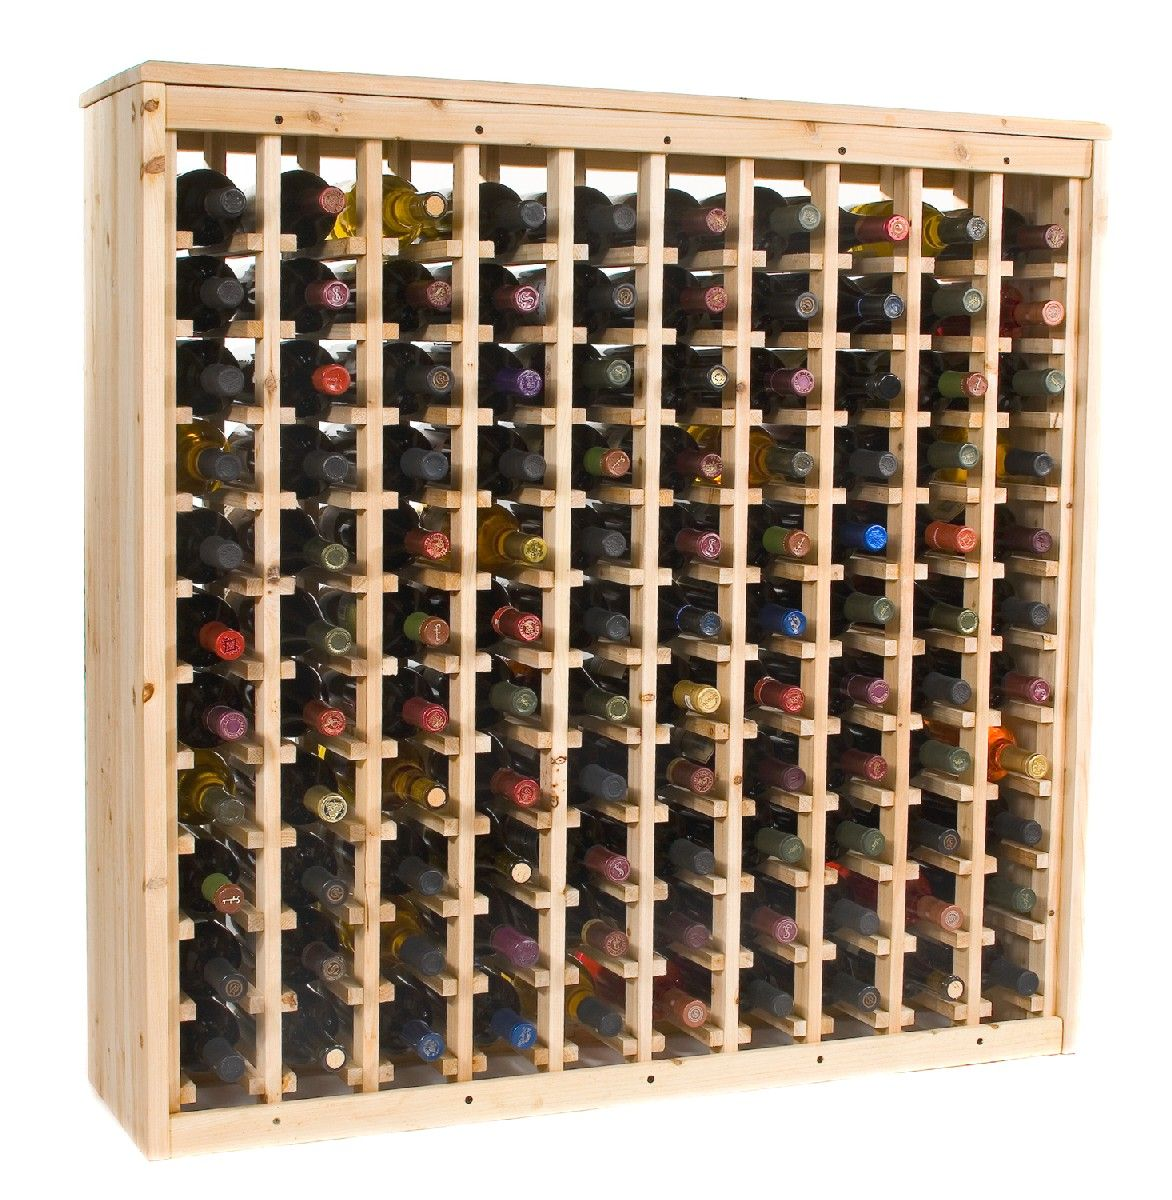 How To Make A Wine Rack Latest Wine Rack Kits Wine Racks Pinterest Wine Rack